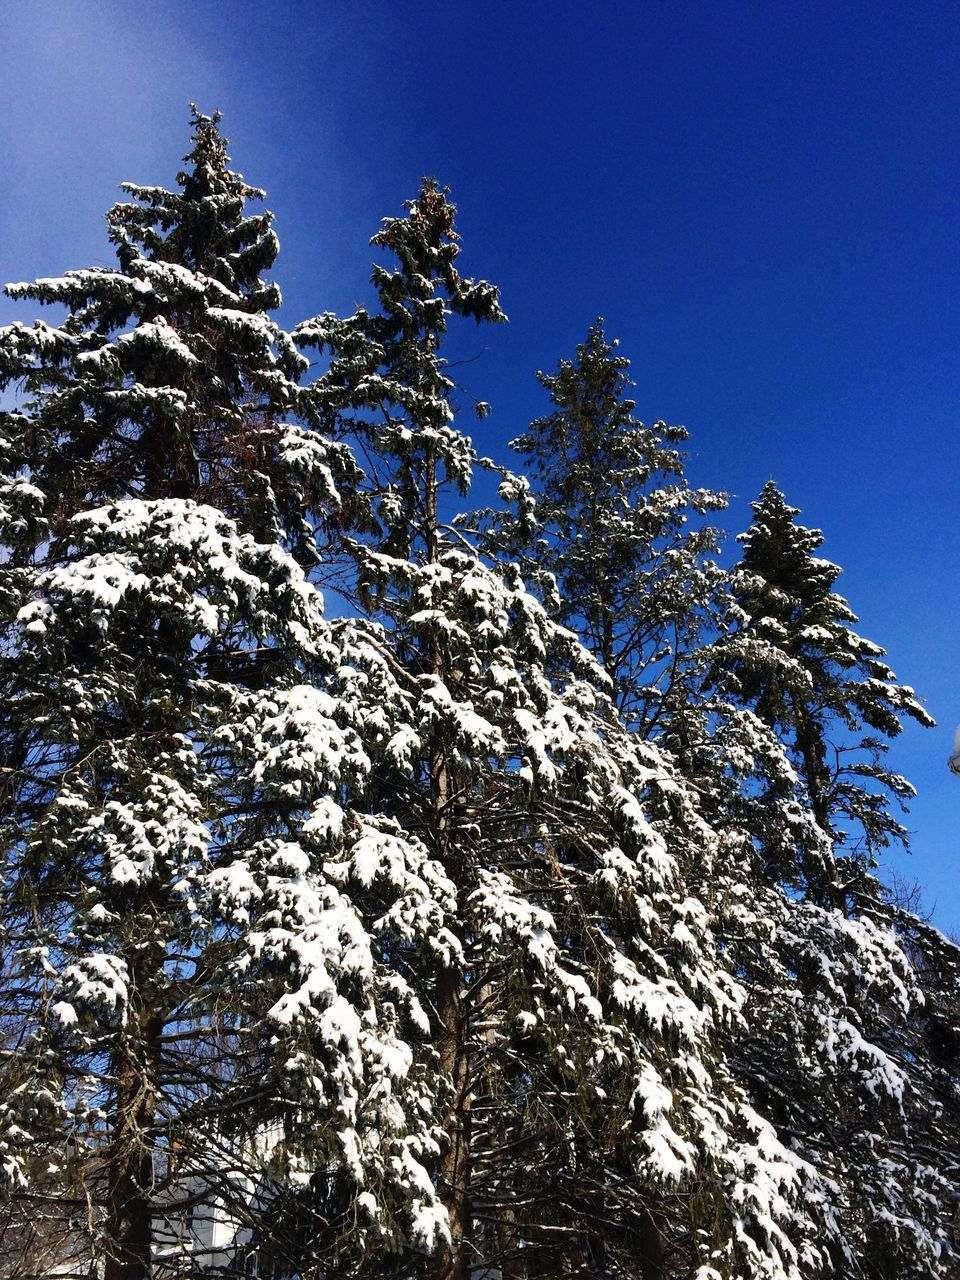 Low Angle View Of Snow Covered Trees Against Clear Blue Sky